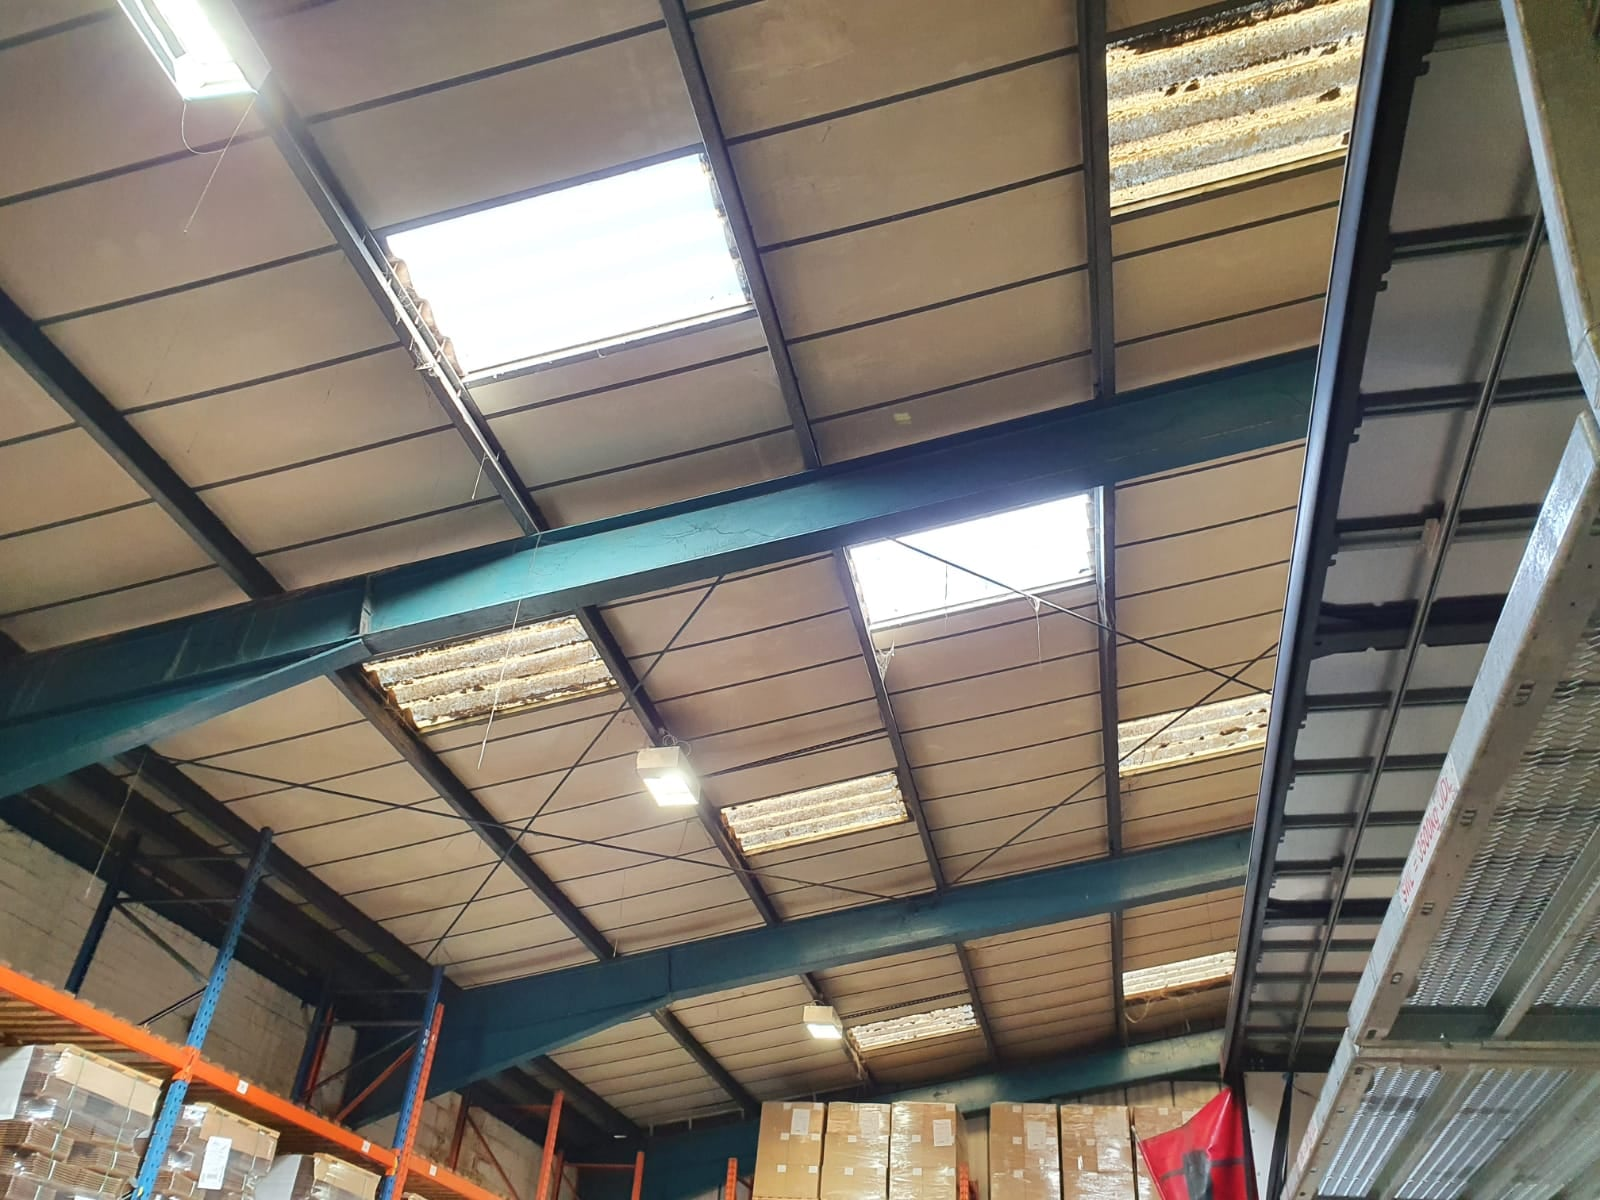 Rooflight repairs to a leaking Warehouse Roof in Larkfield Aylesford Kent